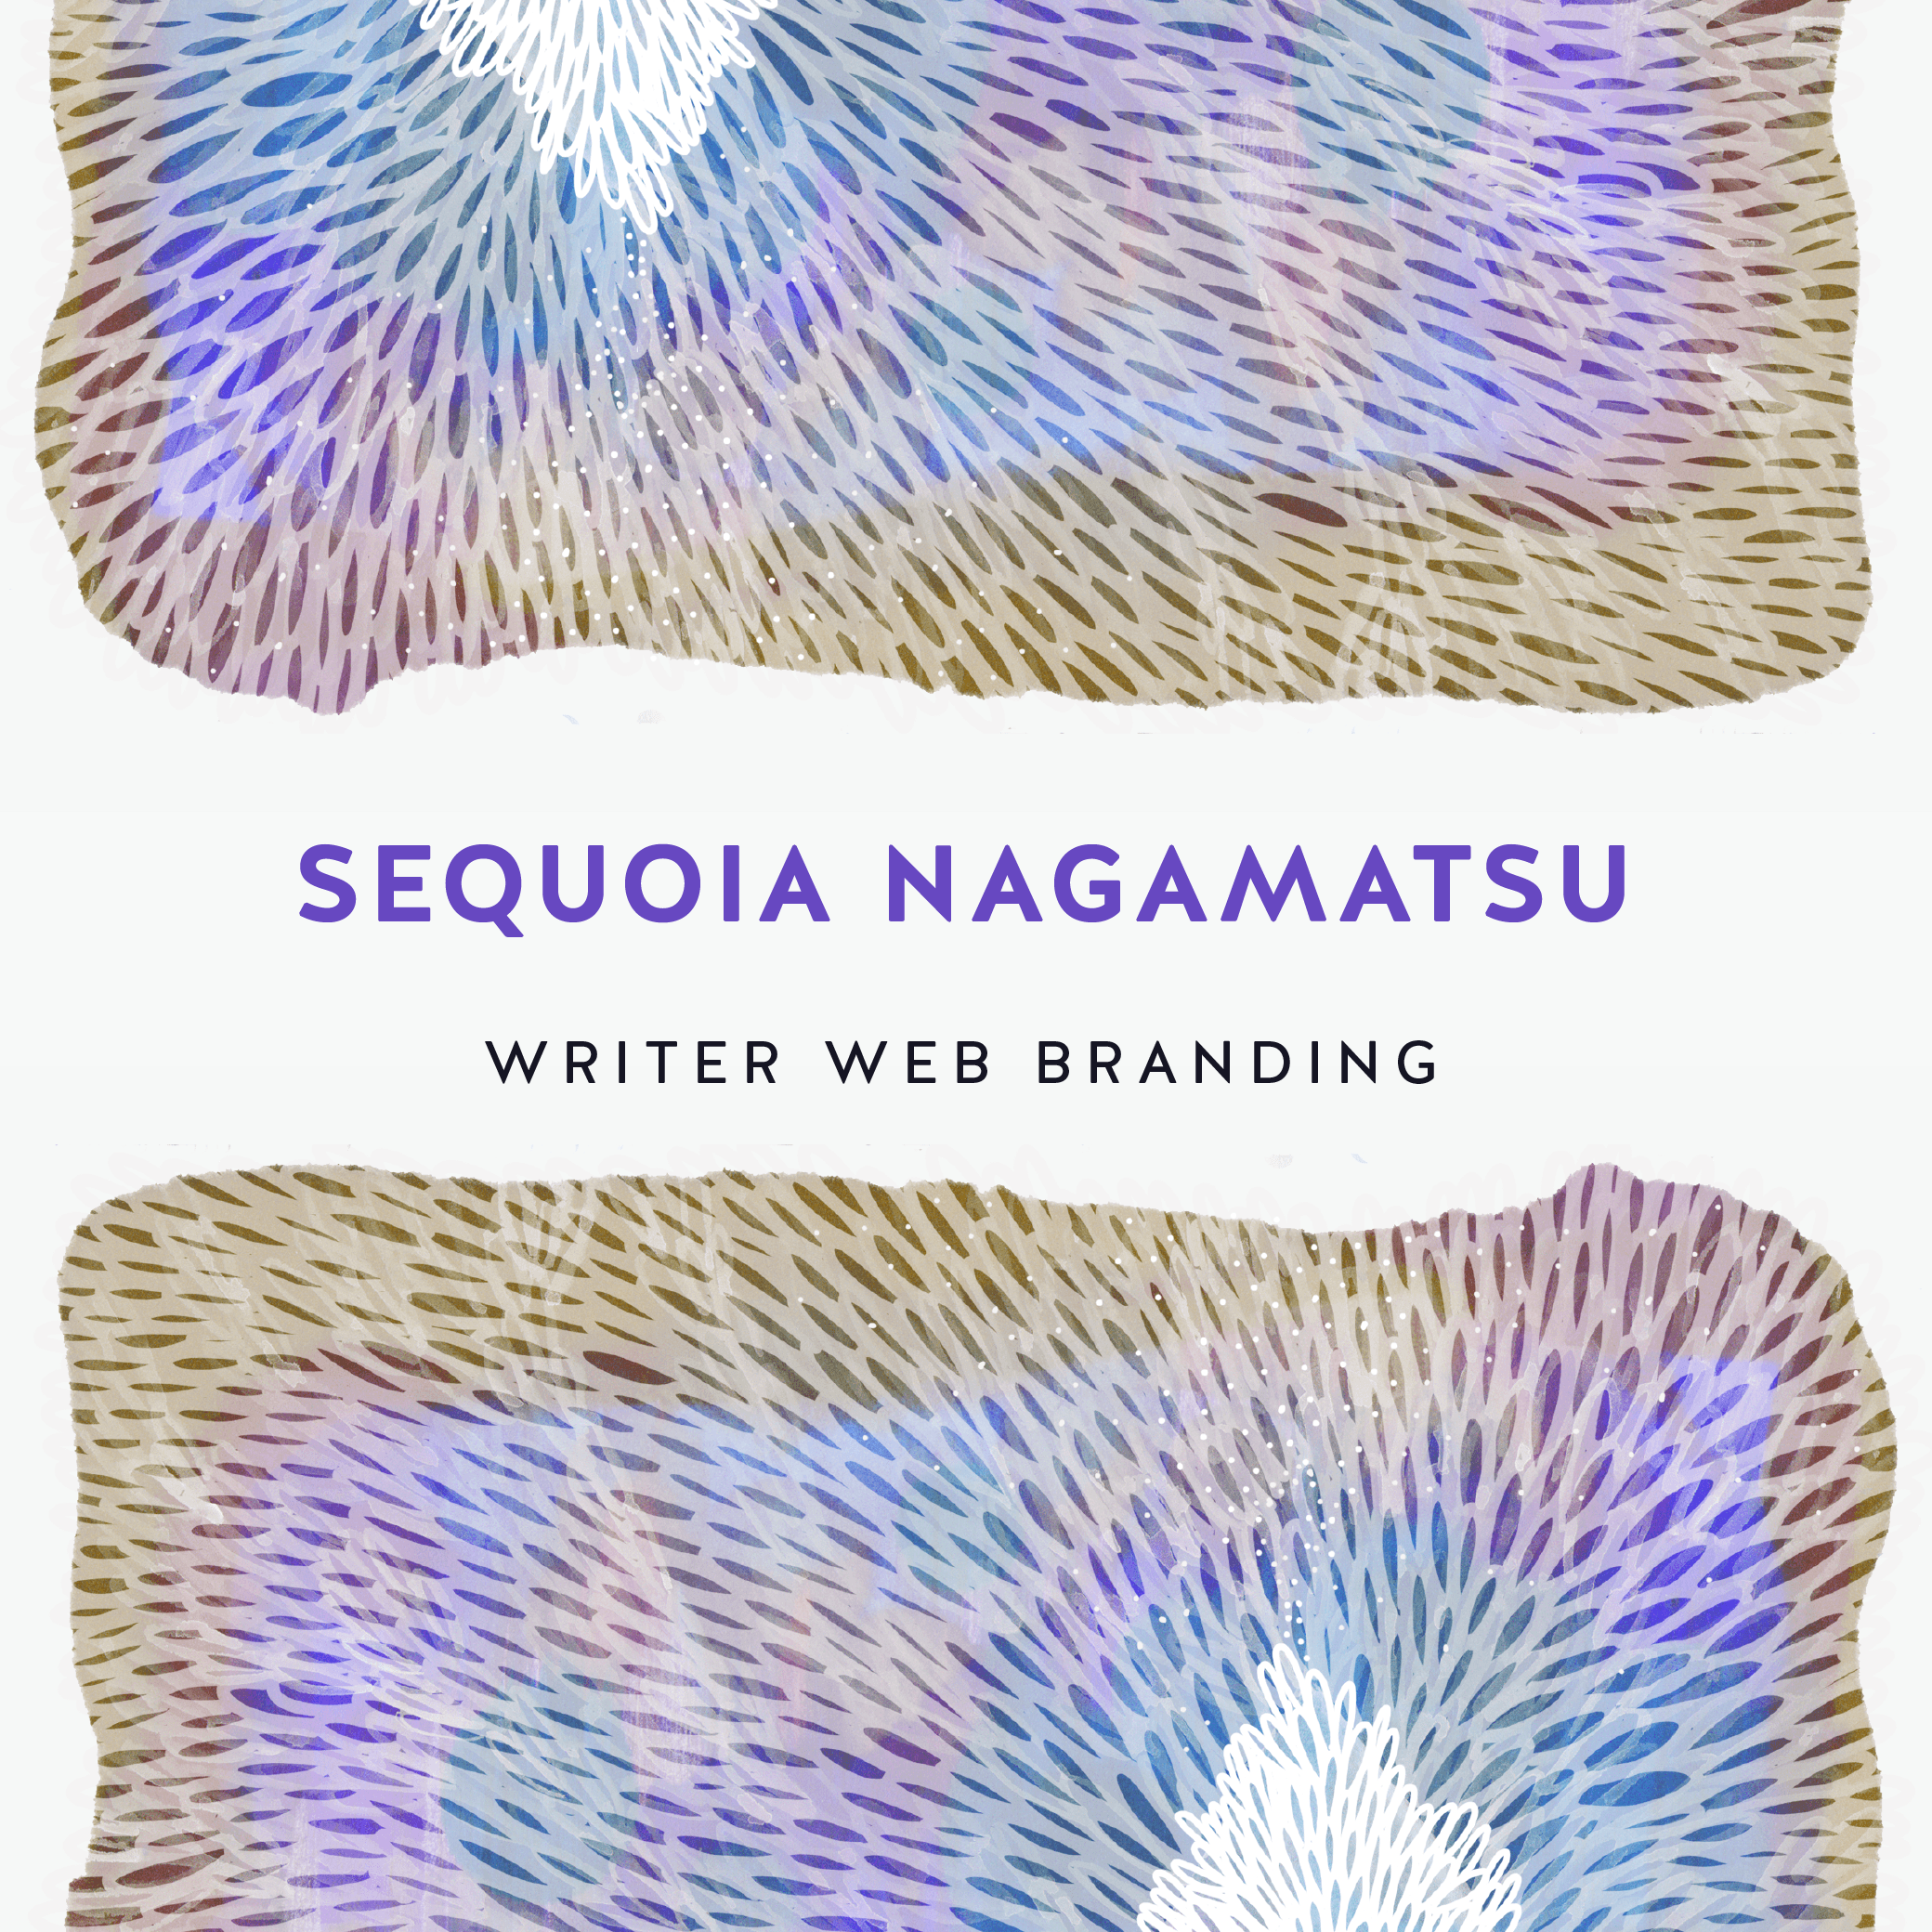 Writer Poet Author Web Branding for Sequoia Nagamatsu | We wanted to create an immersive experience with the art. | By Nikkita.Co http://nikkita.co